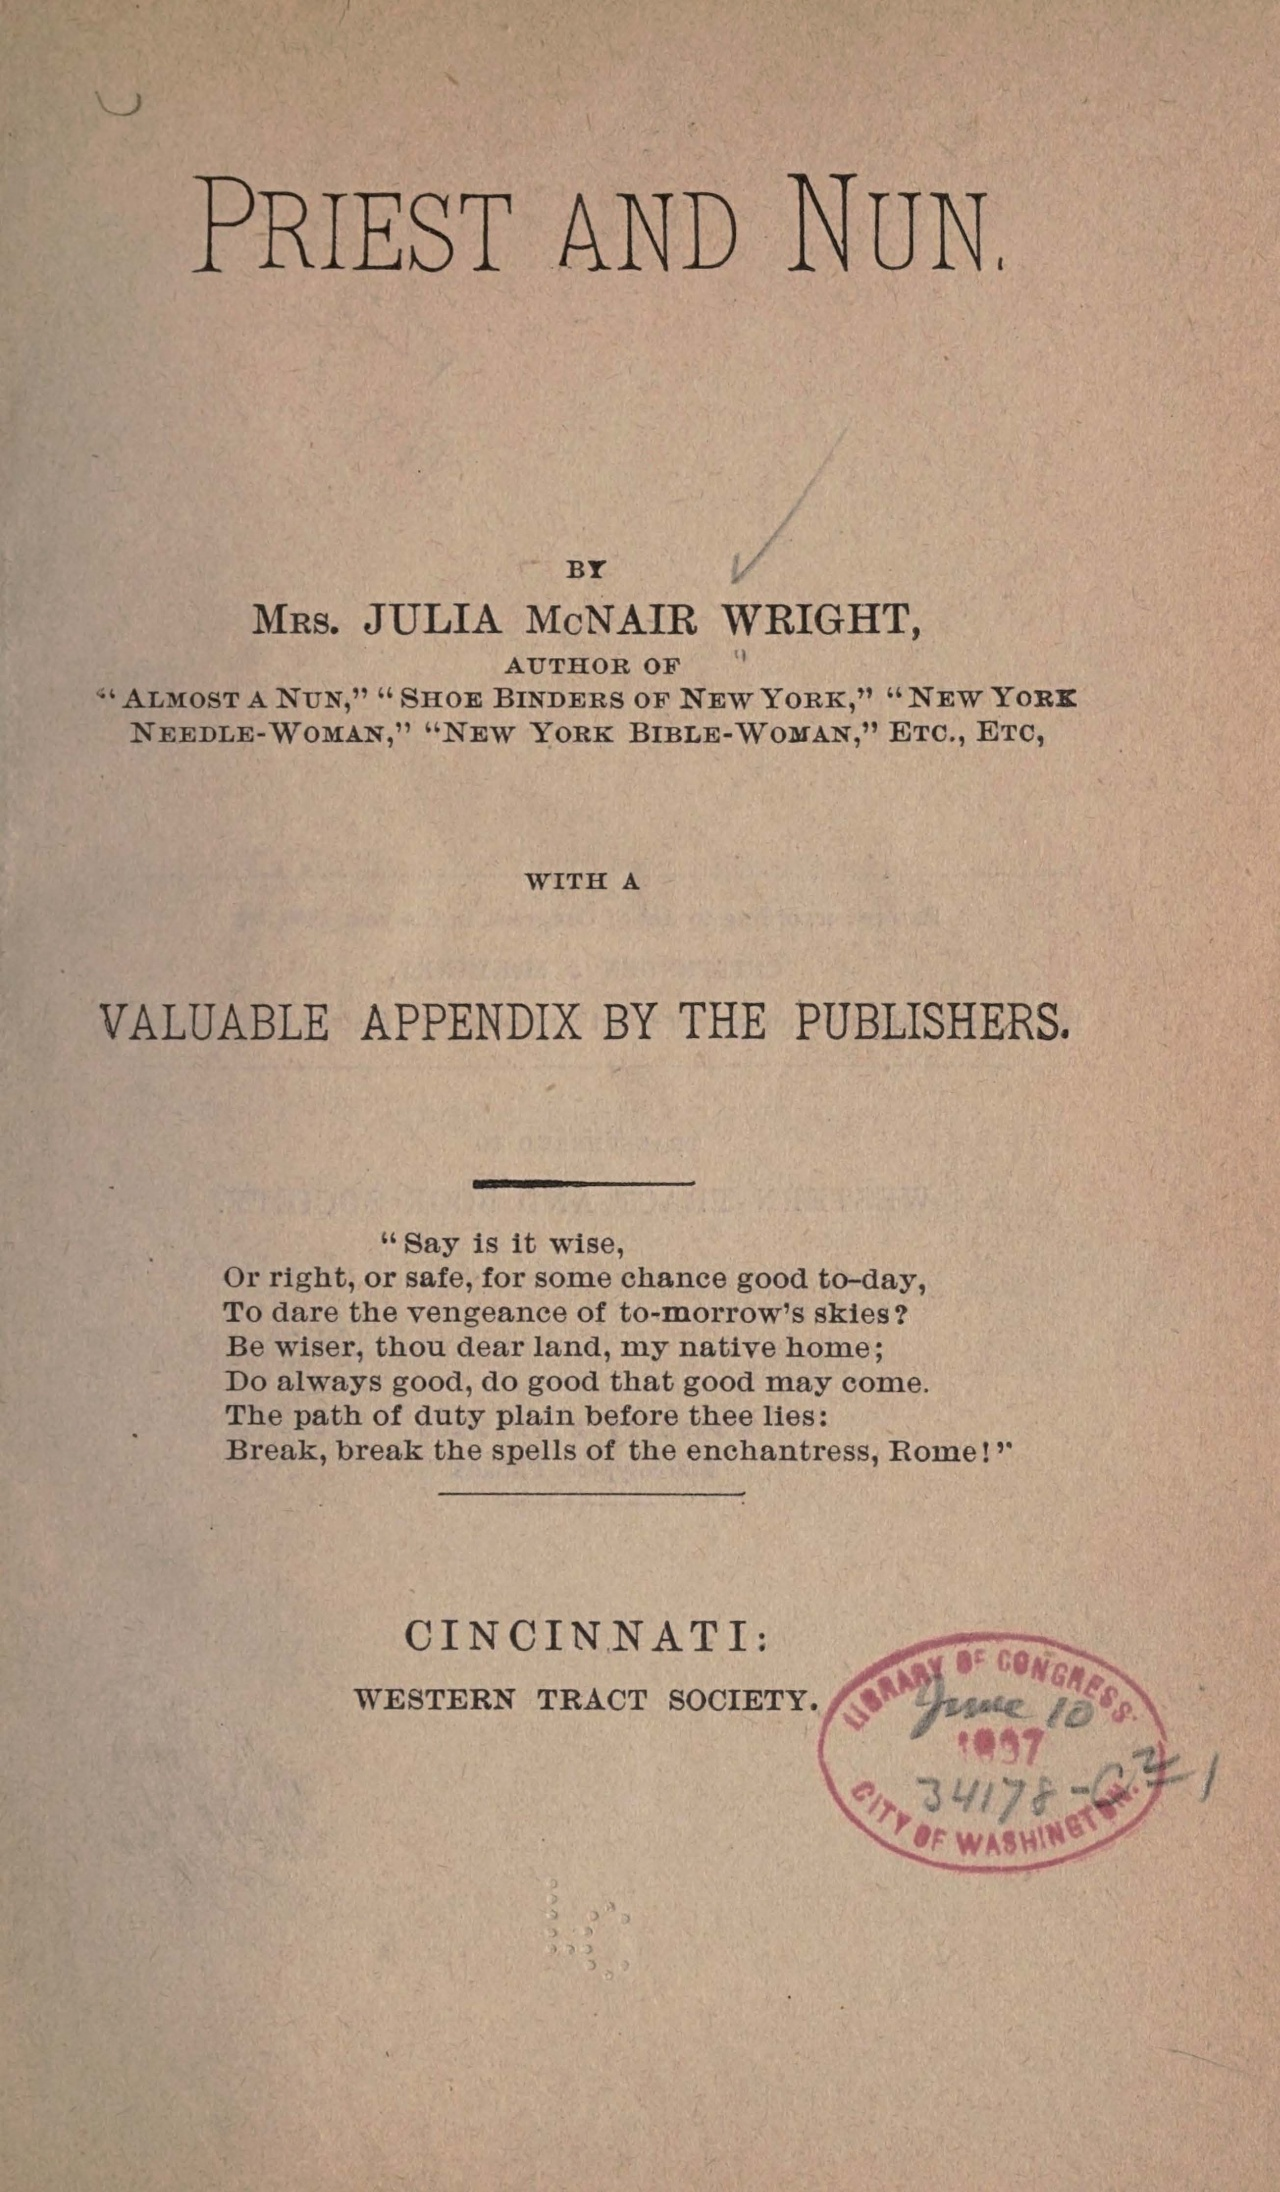 Wright, Julia McNair, Priest and Nun Title Page.jpg